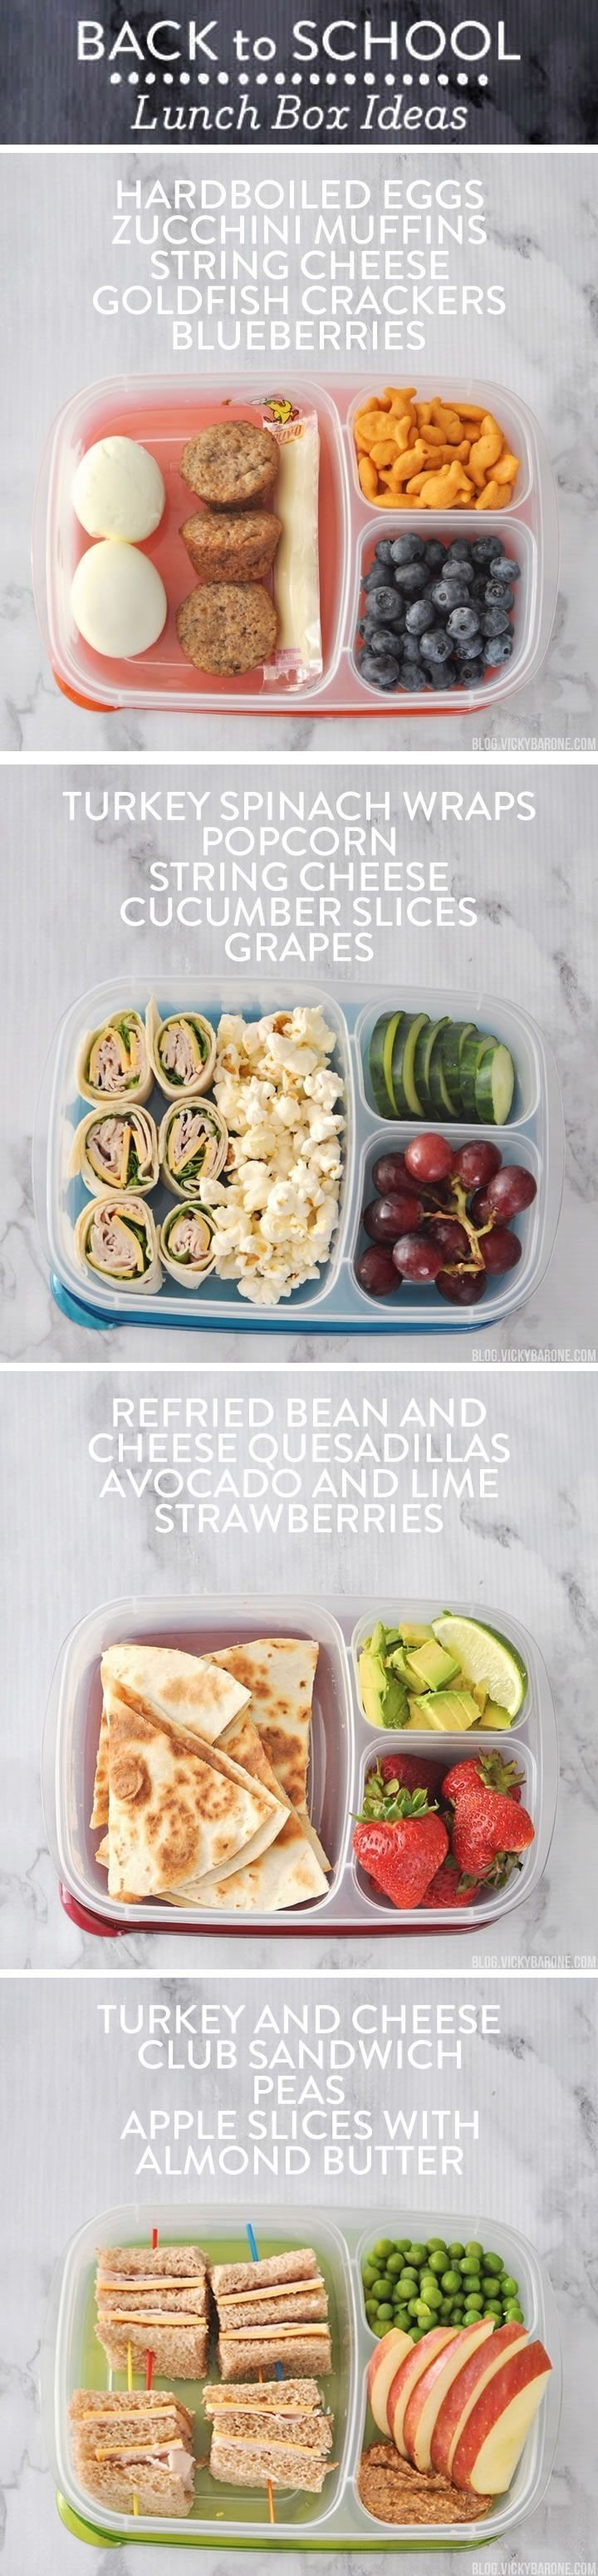 254 best help for packing school lunches images on pinterest